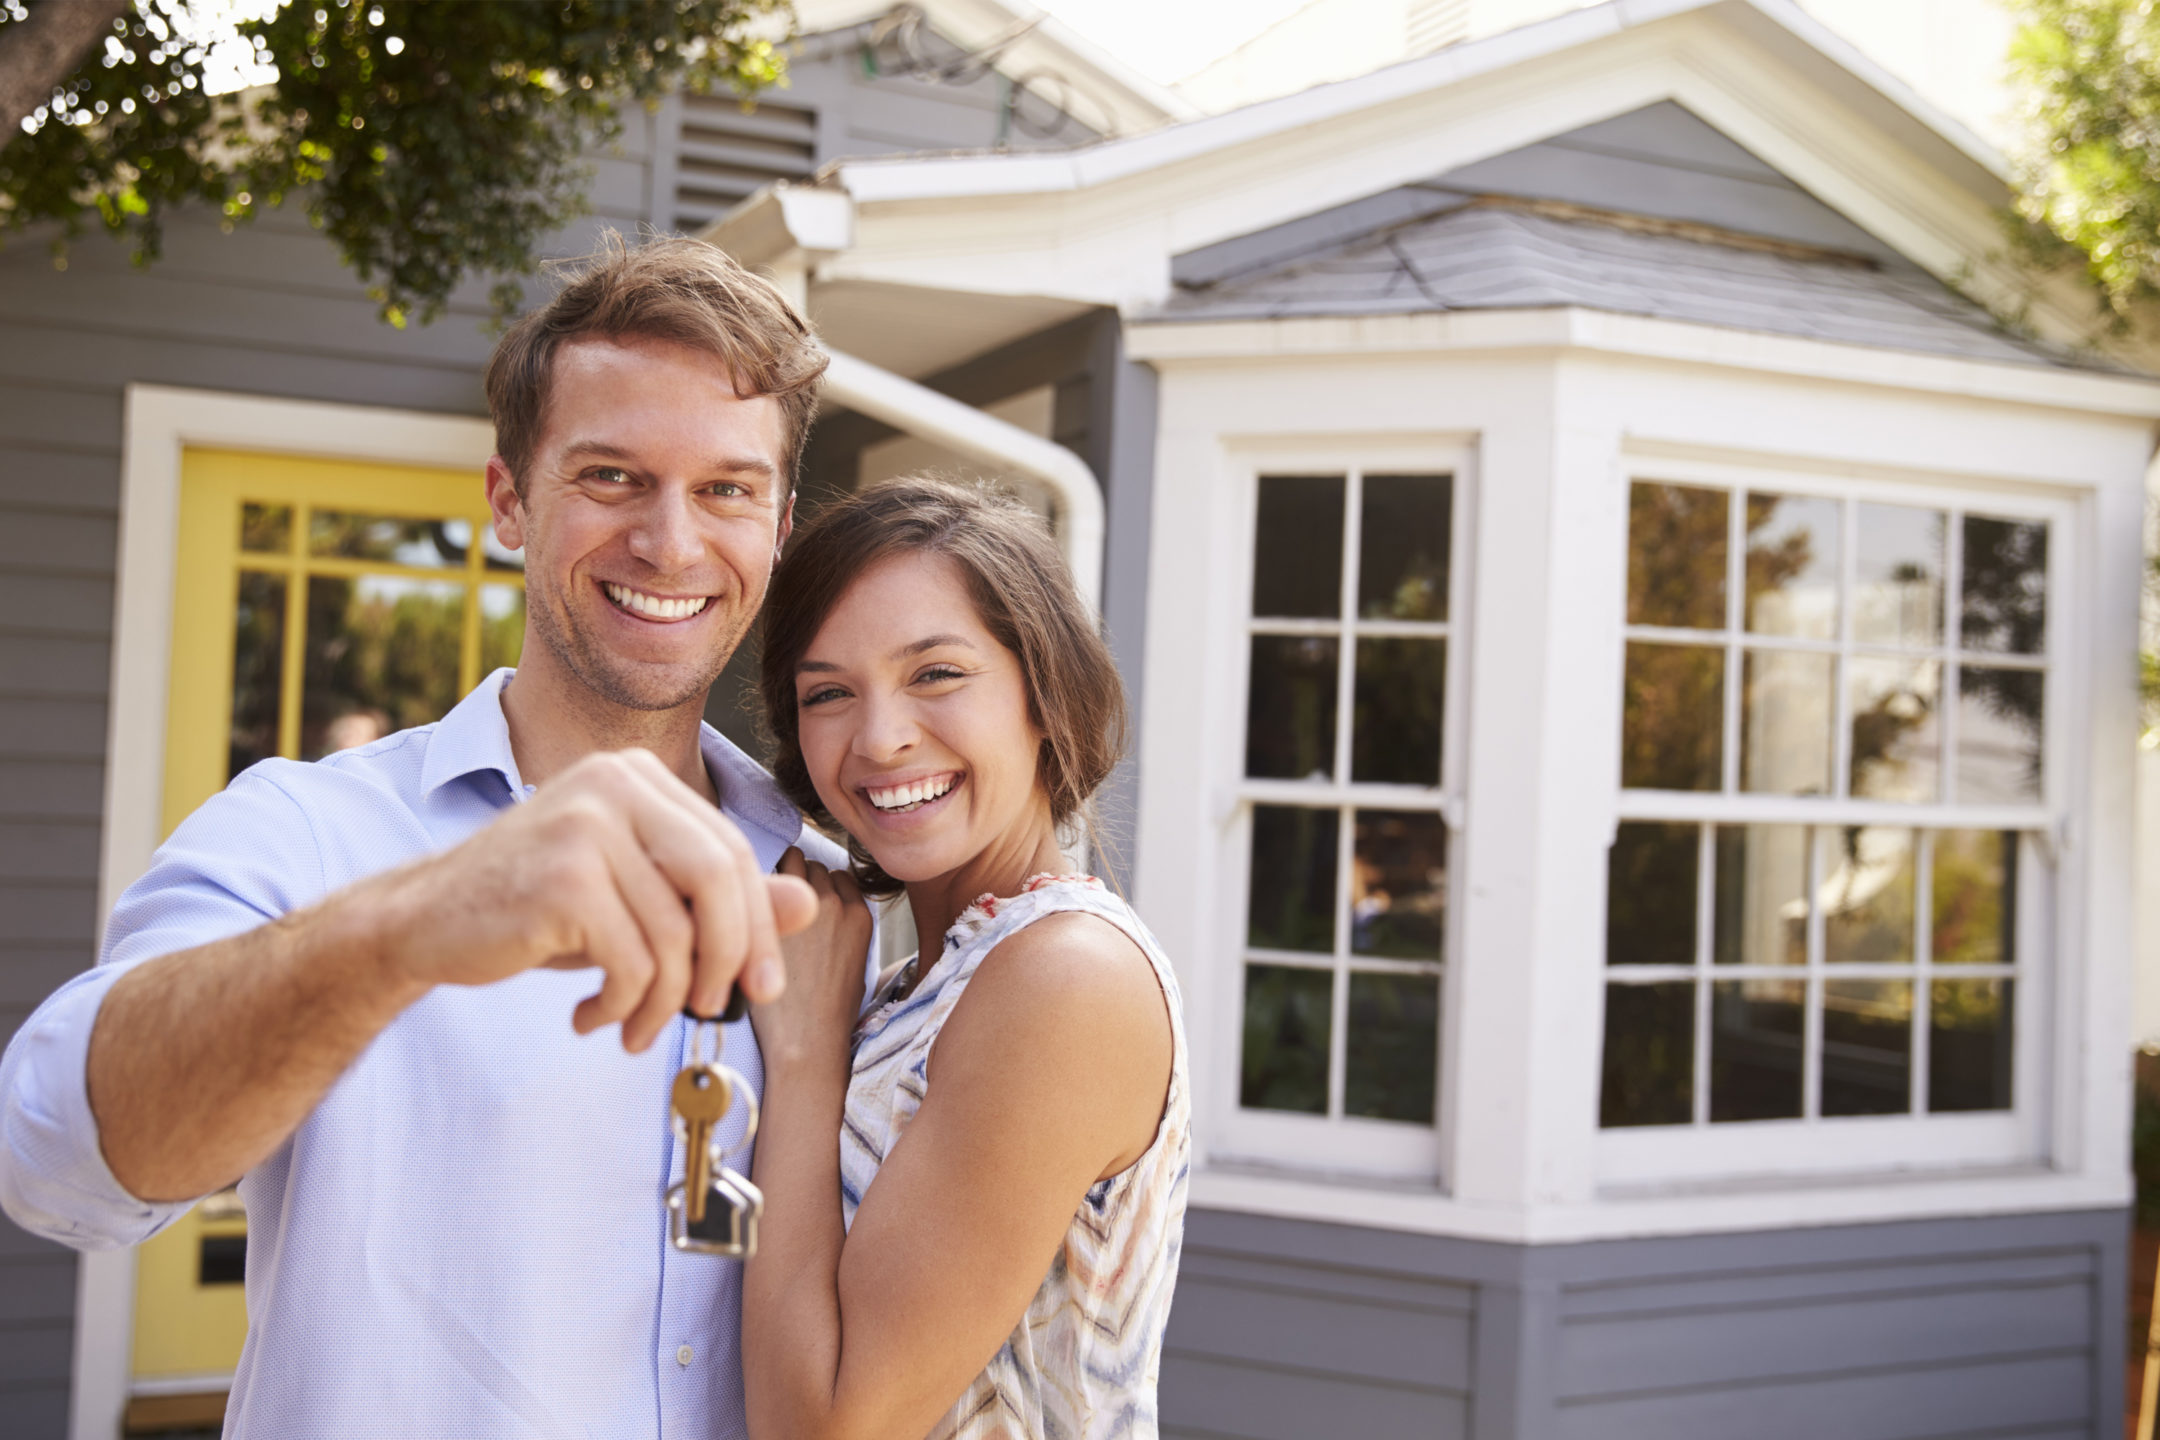 a young couple smiling in front of a house and holding out house keys